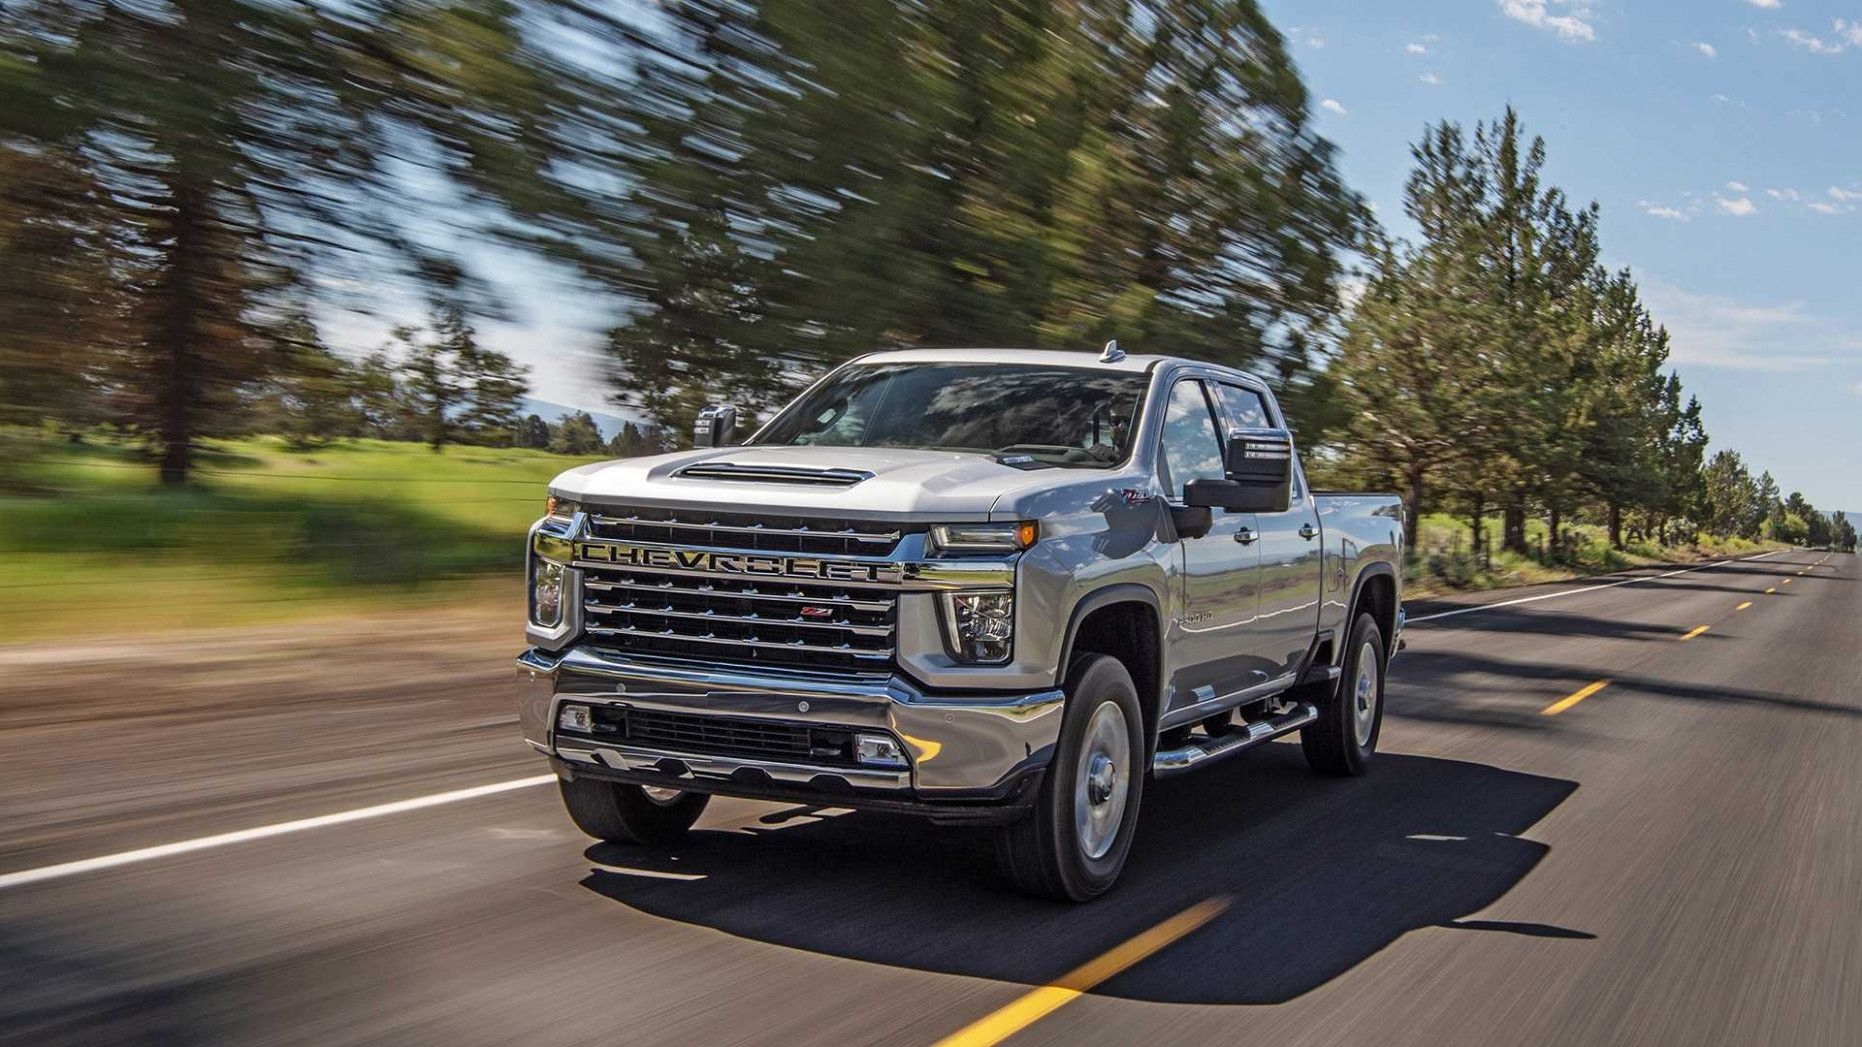 Chevrolet Duramax 2020 Price And Review Chevy Silverado Hd Chevy Silverado Chevrolet Silverado